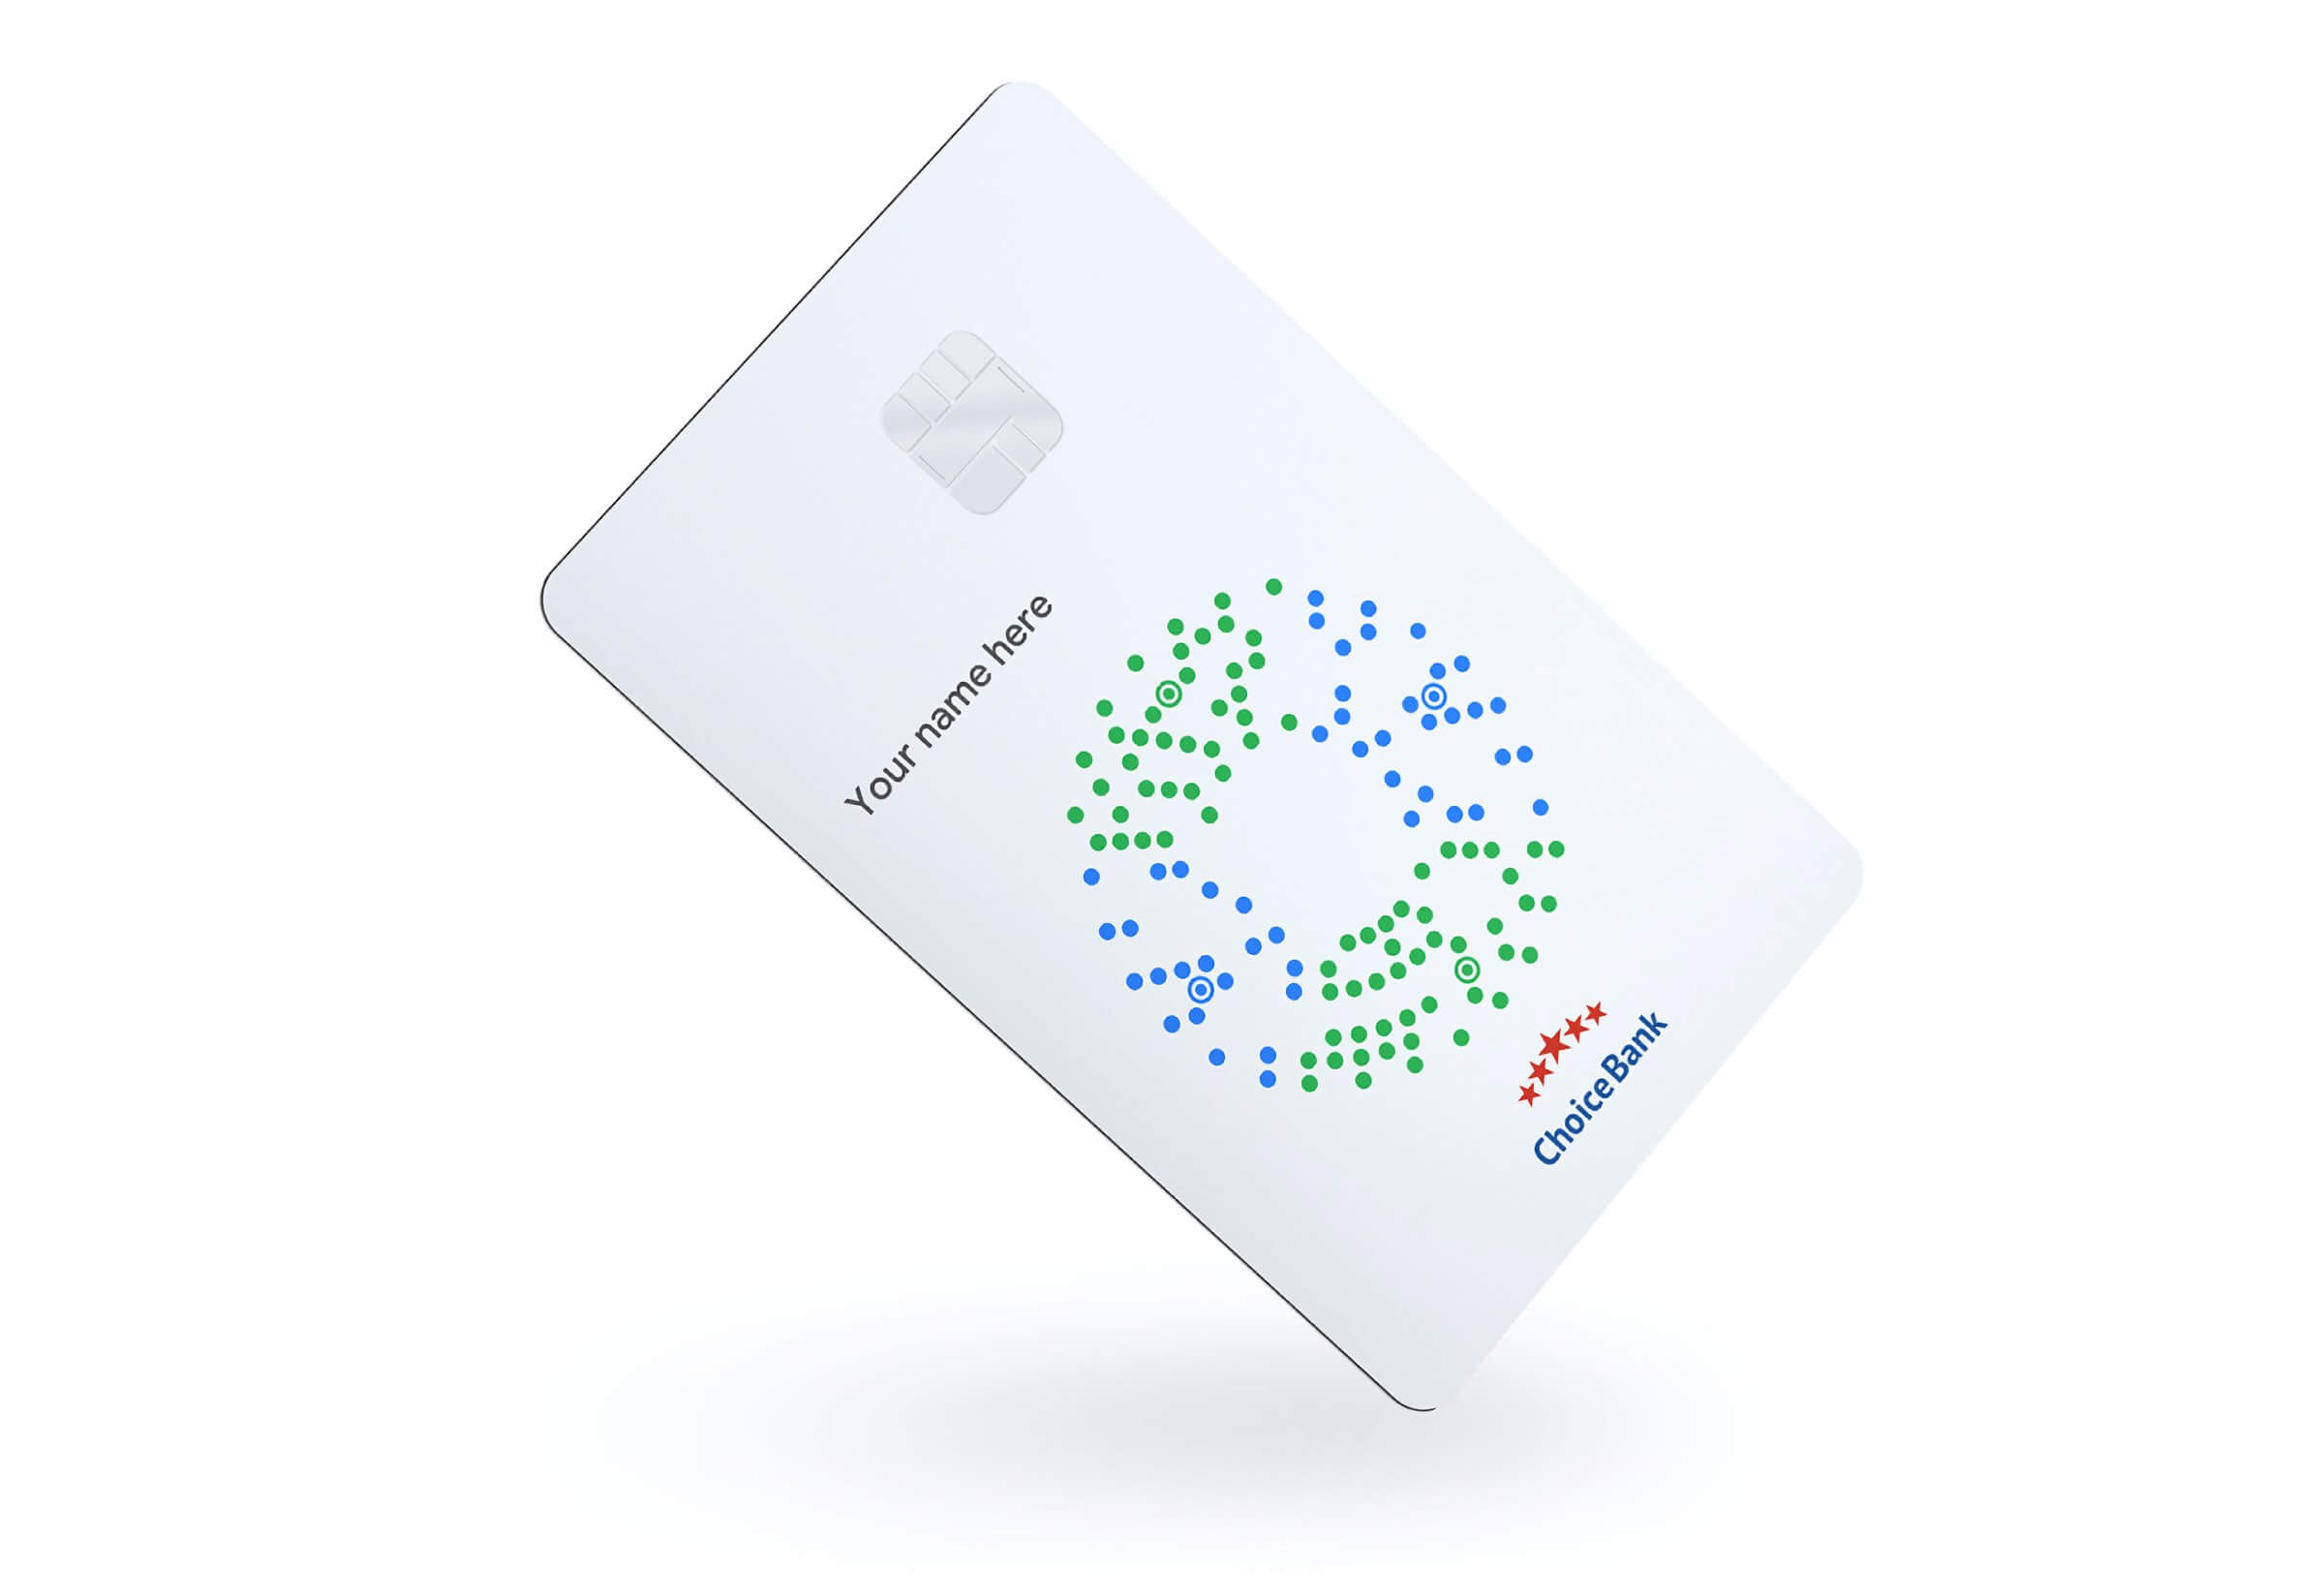 Google has reportedly added a smart debit card to its fintech plans